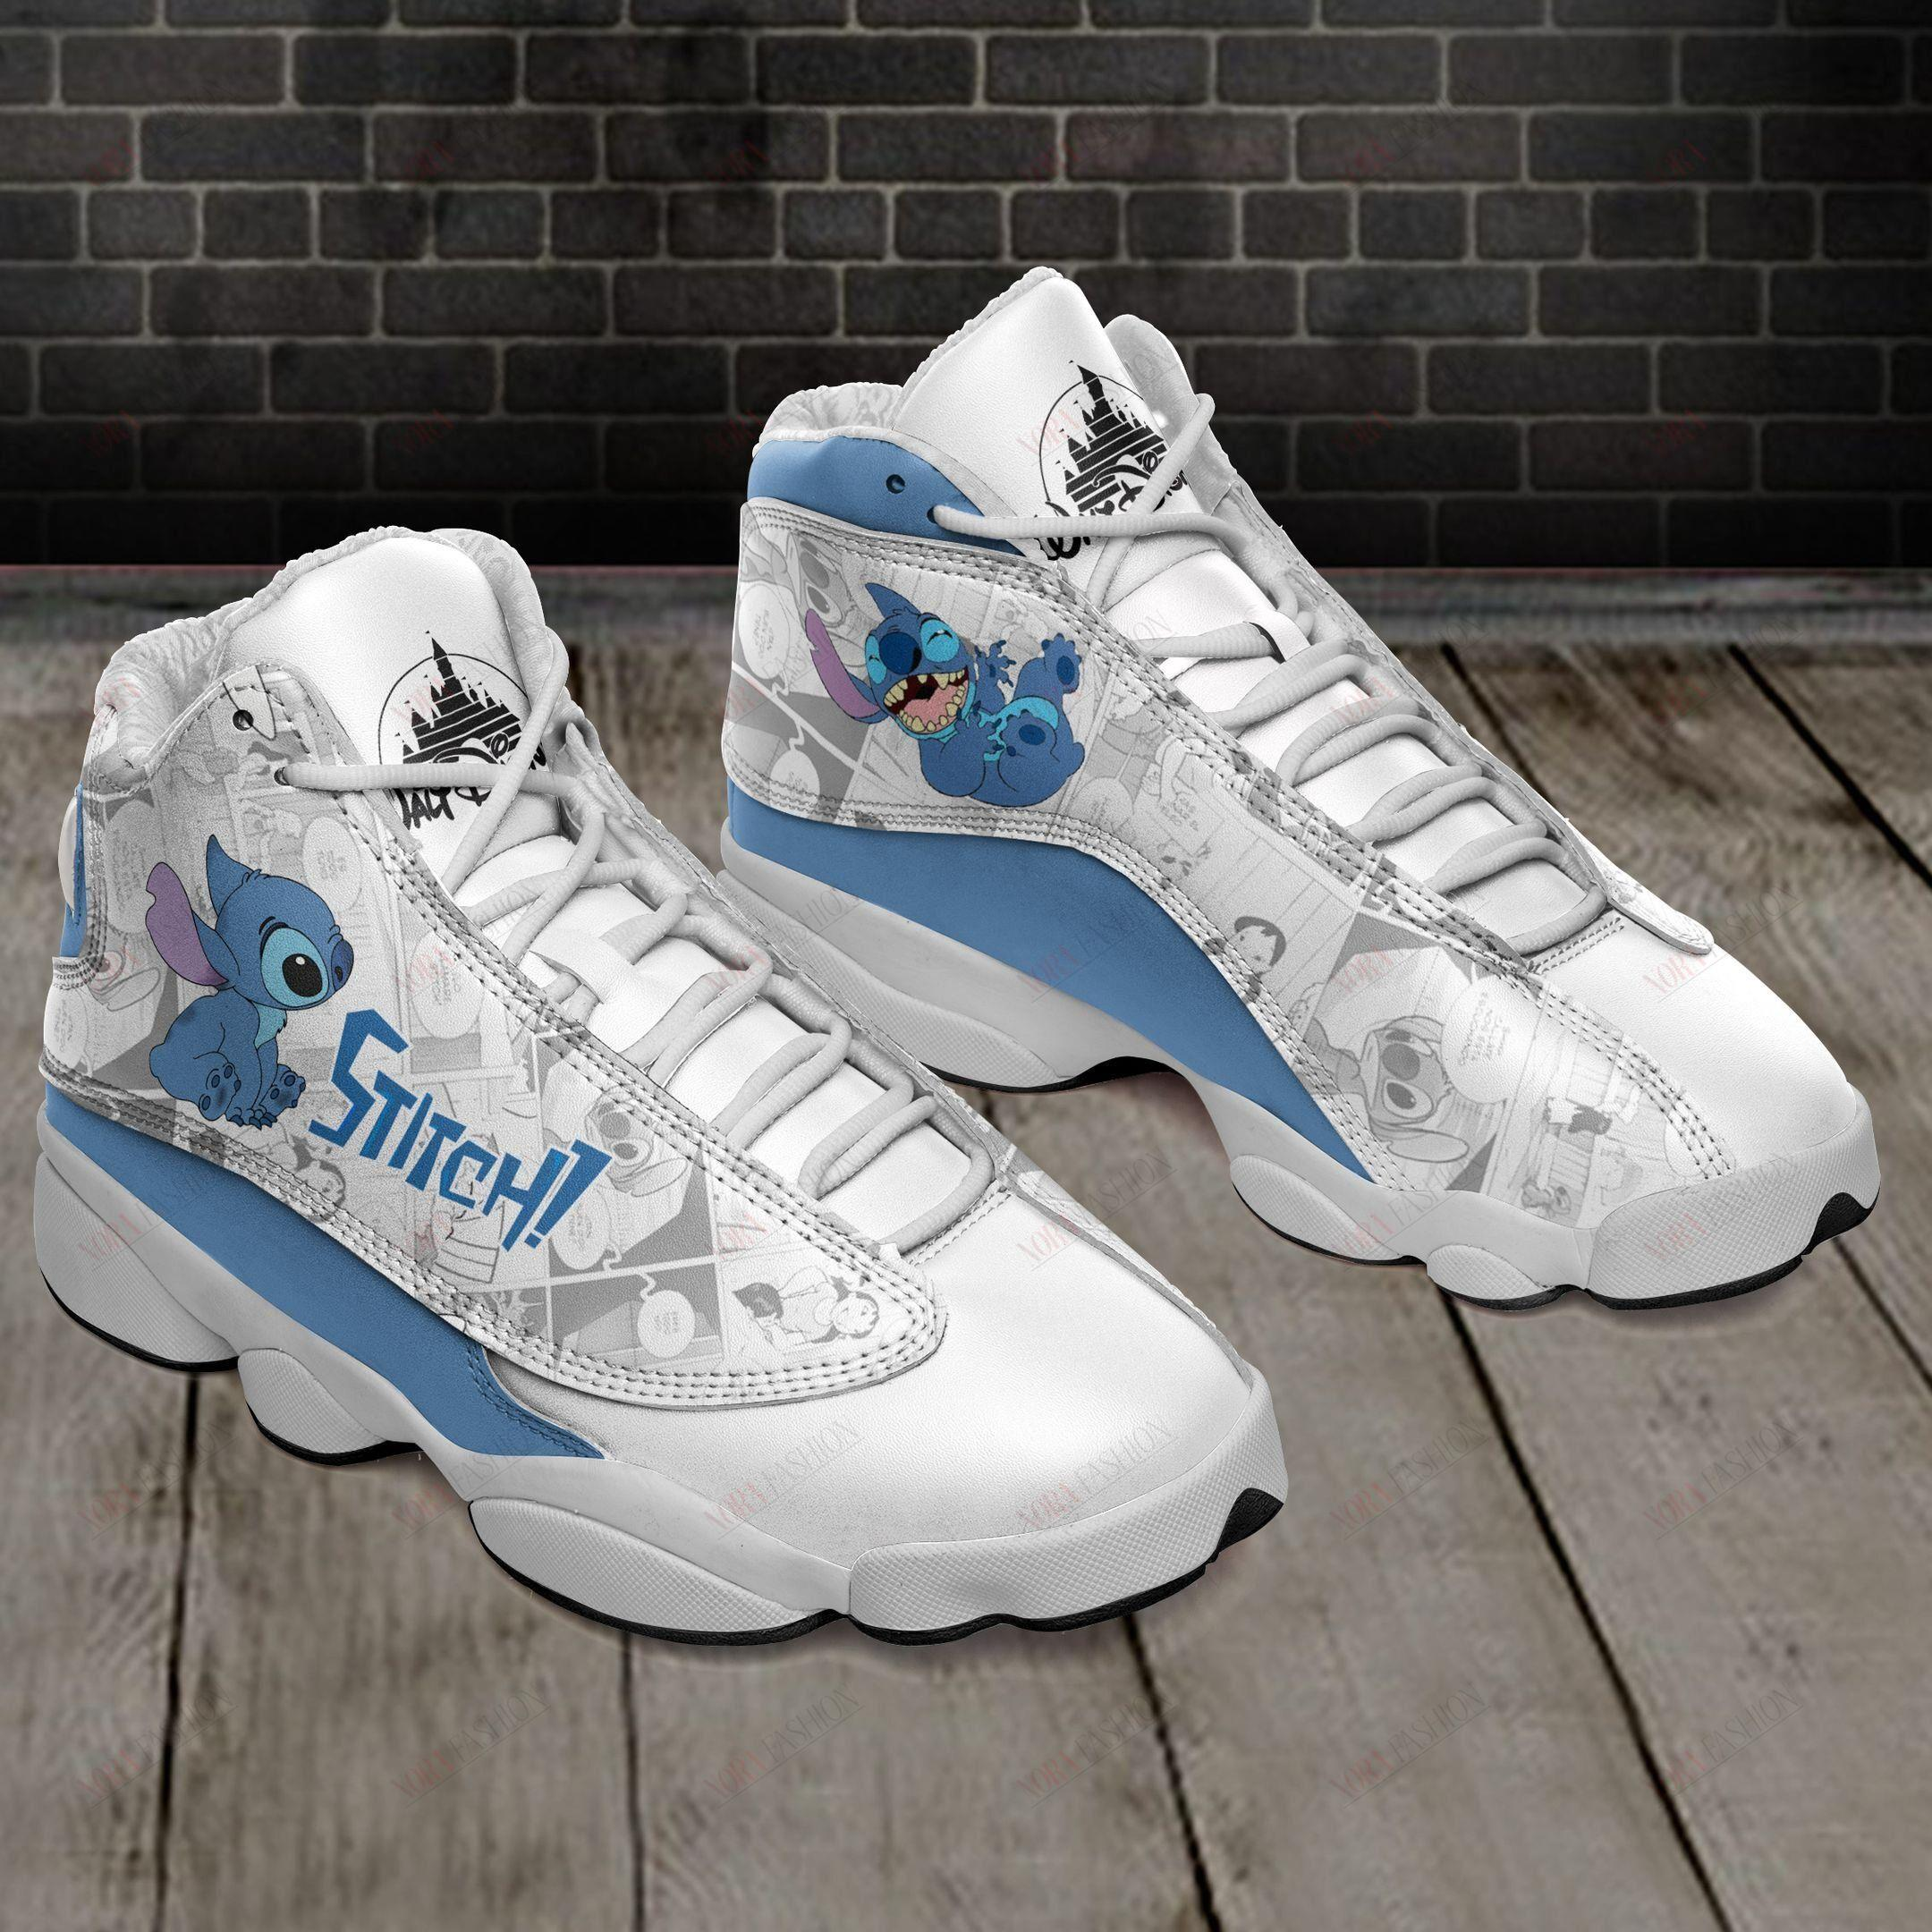 Stitch Air Air Jordan 13 Sneakers Sport Shoes